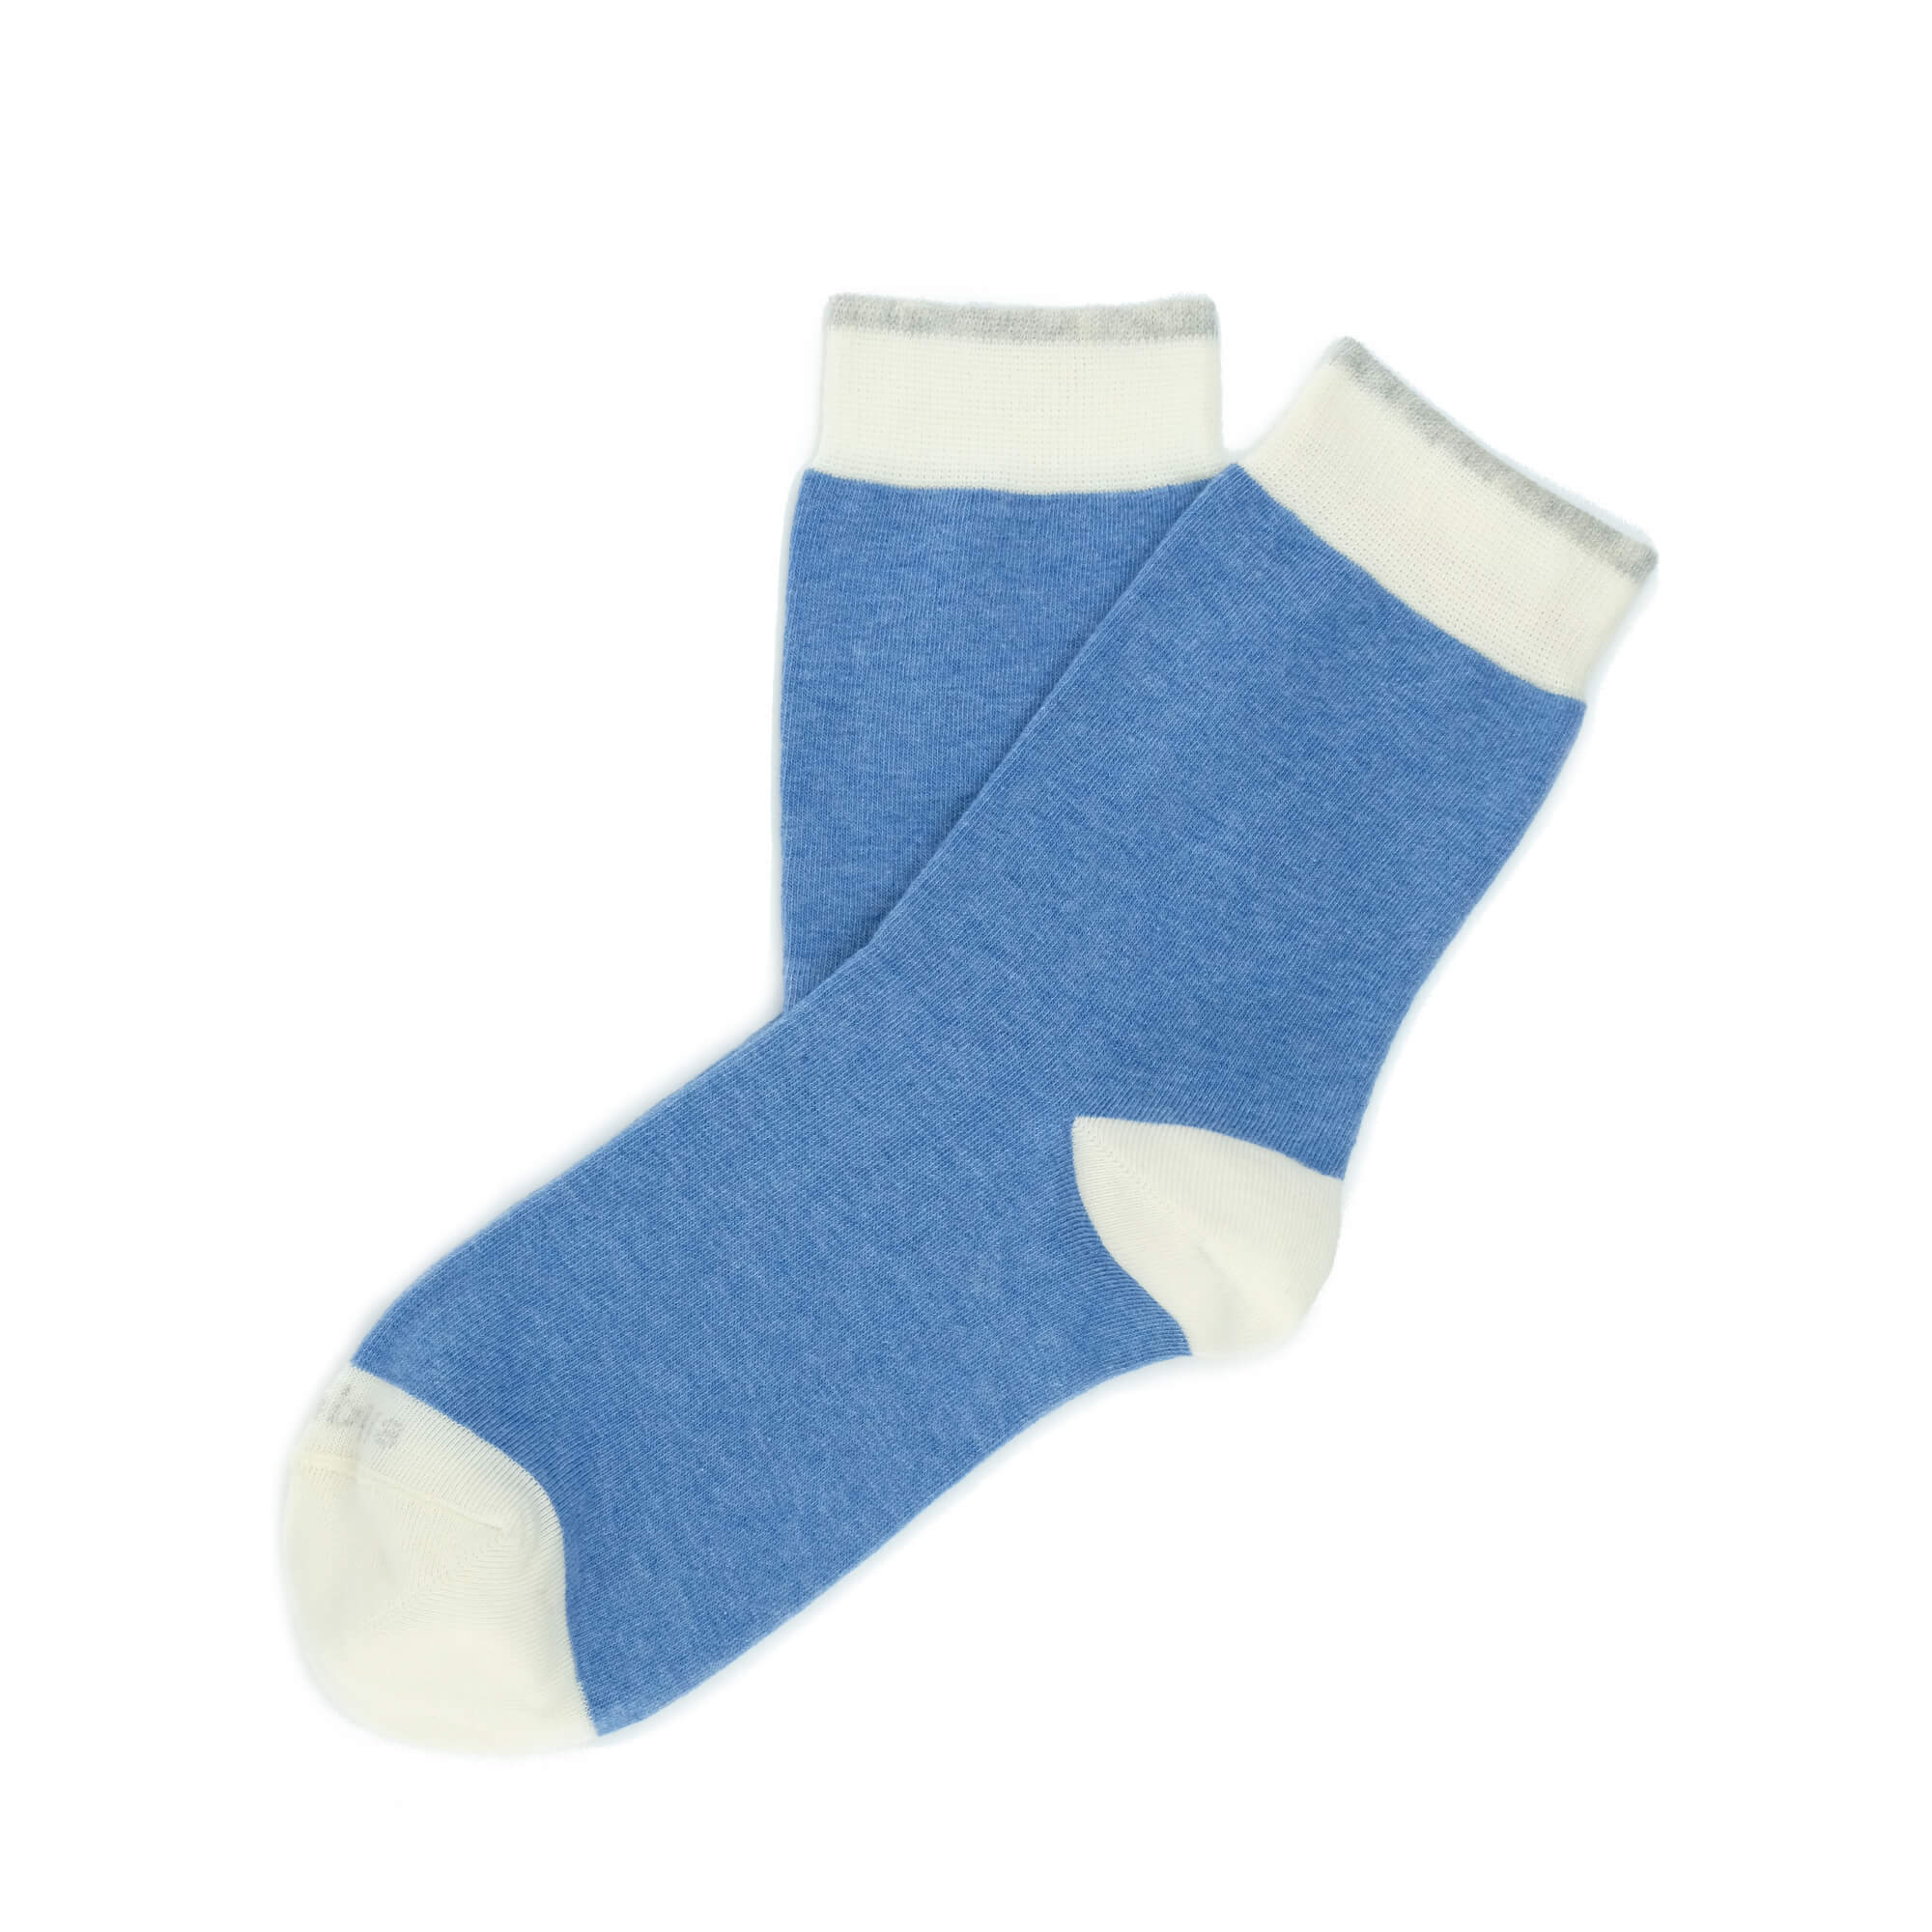 Womens Socks - Tri Pop Women's Socks - Light Blue⎪Etiquette Clothiers